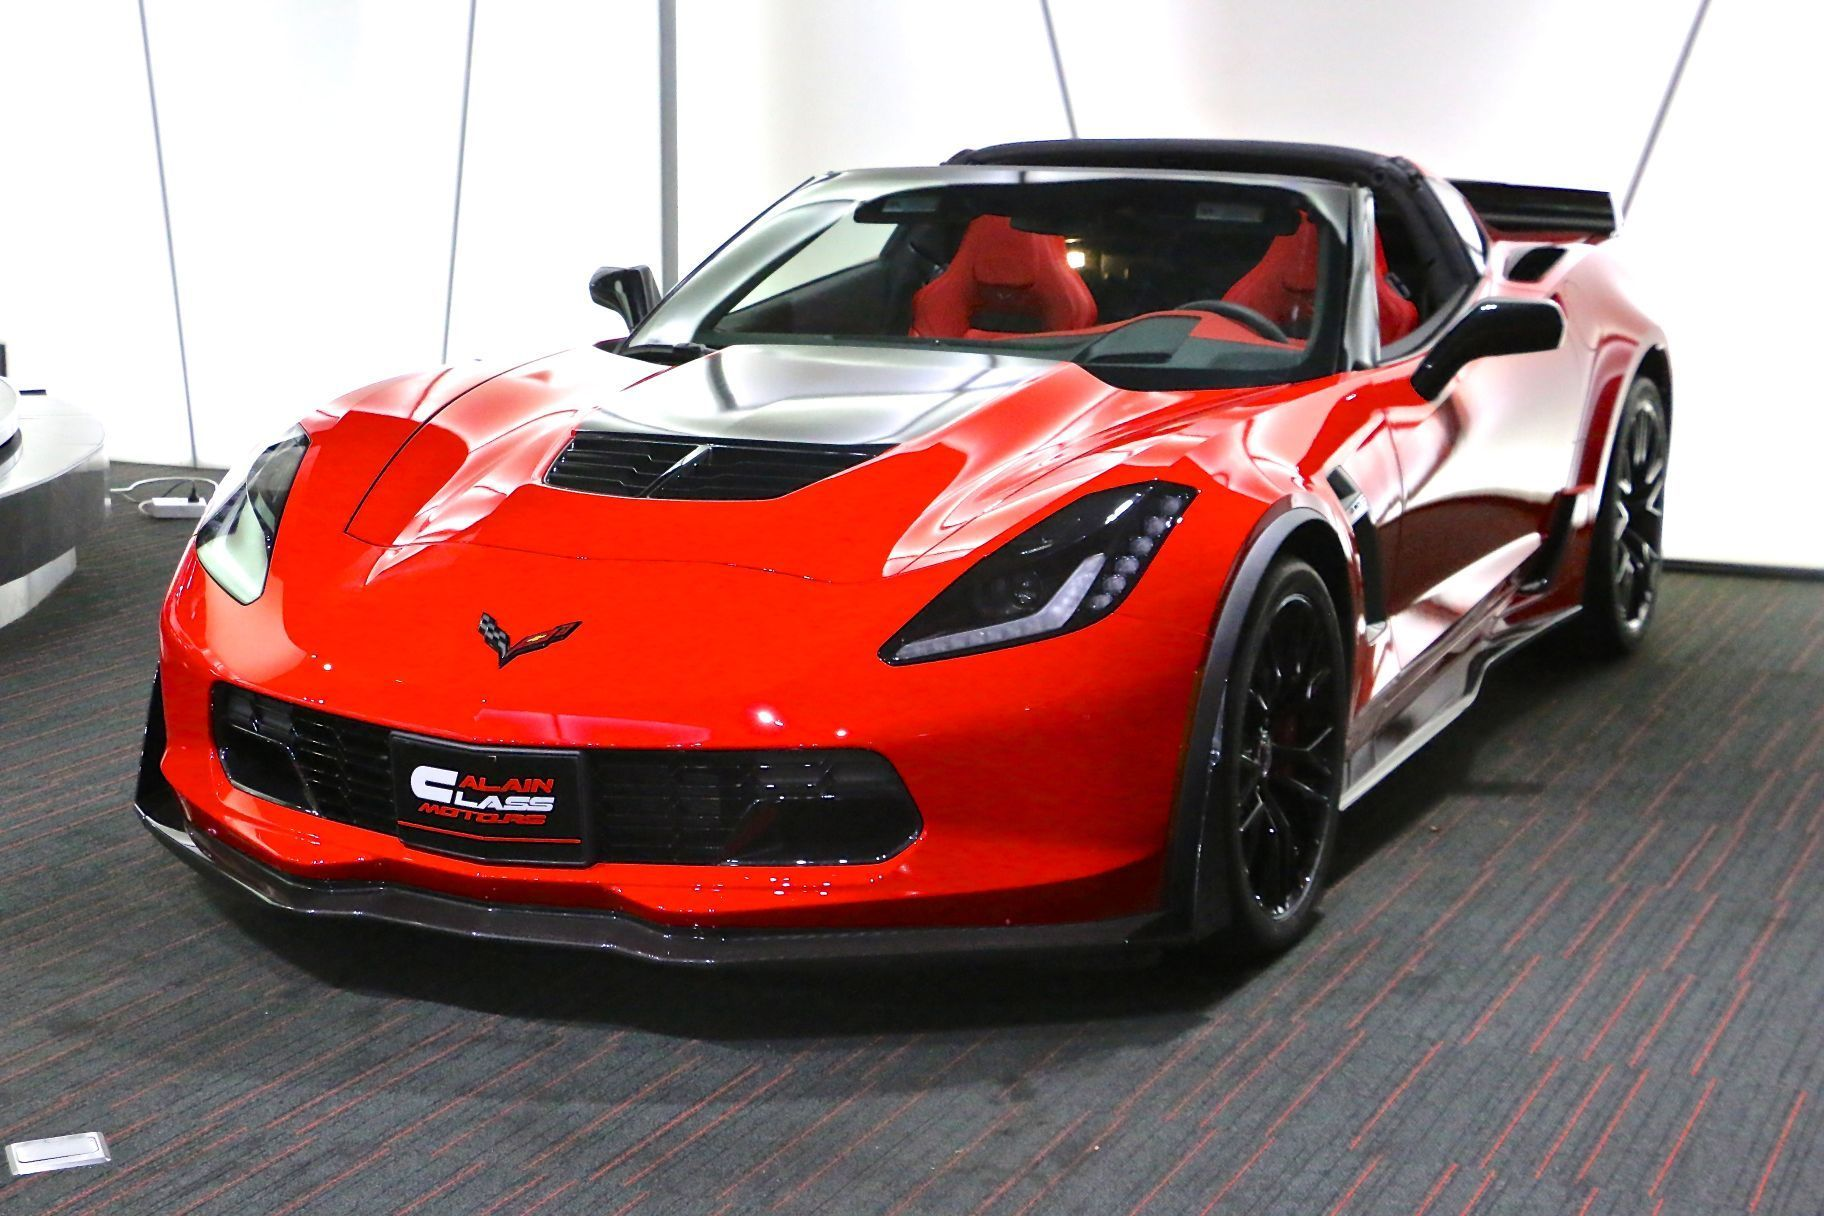 Elegant Corvette 2015 Prices